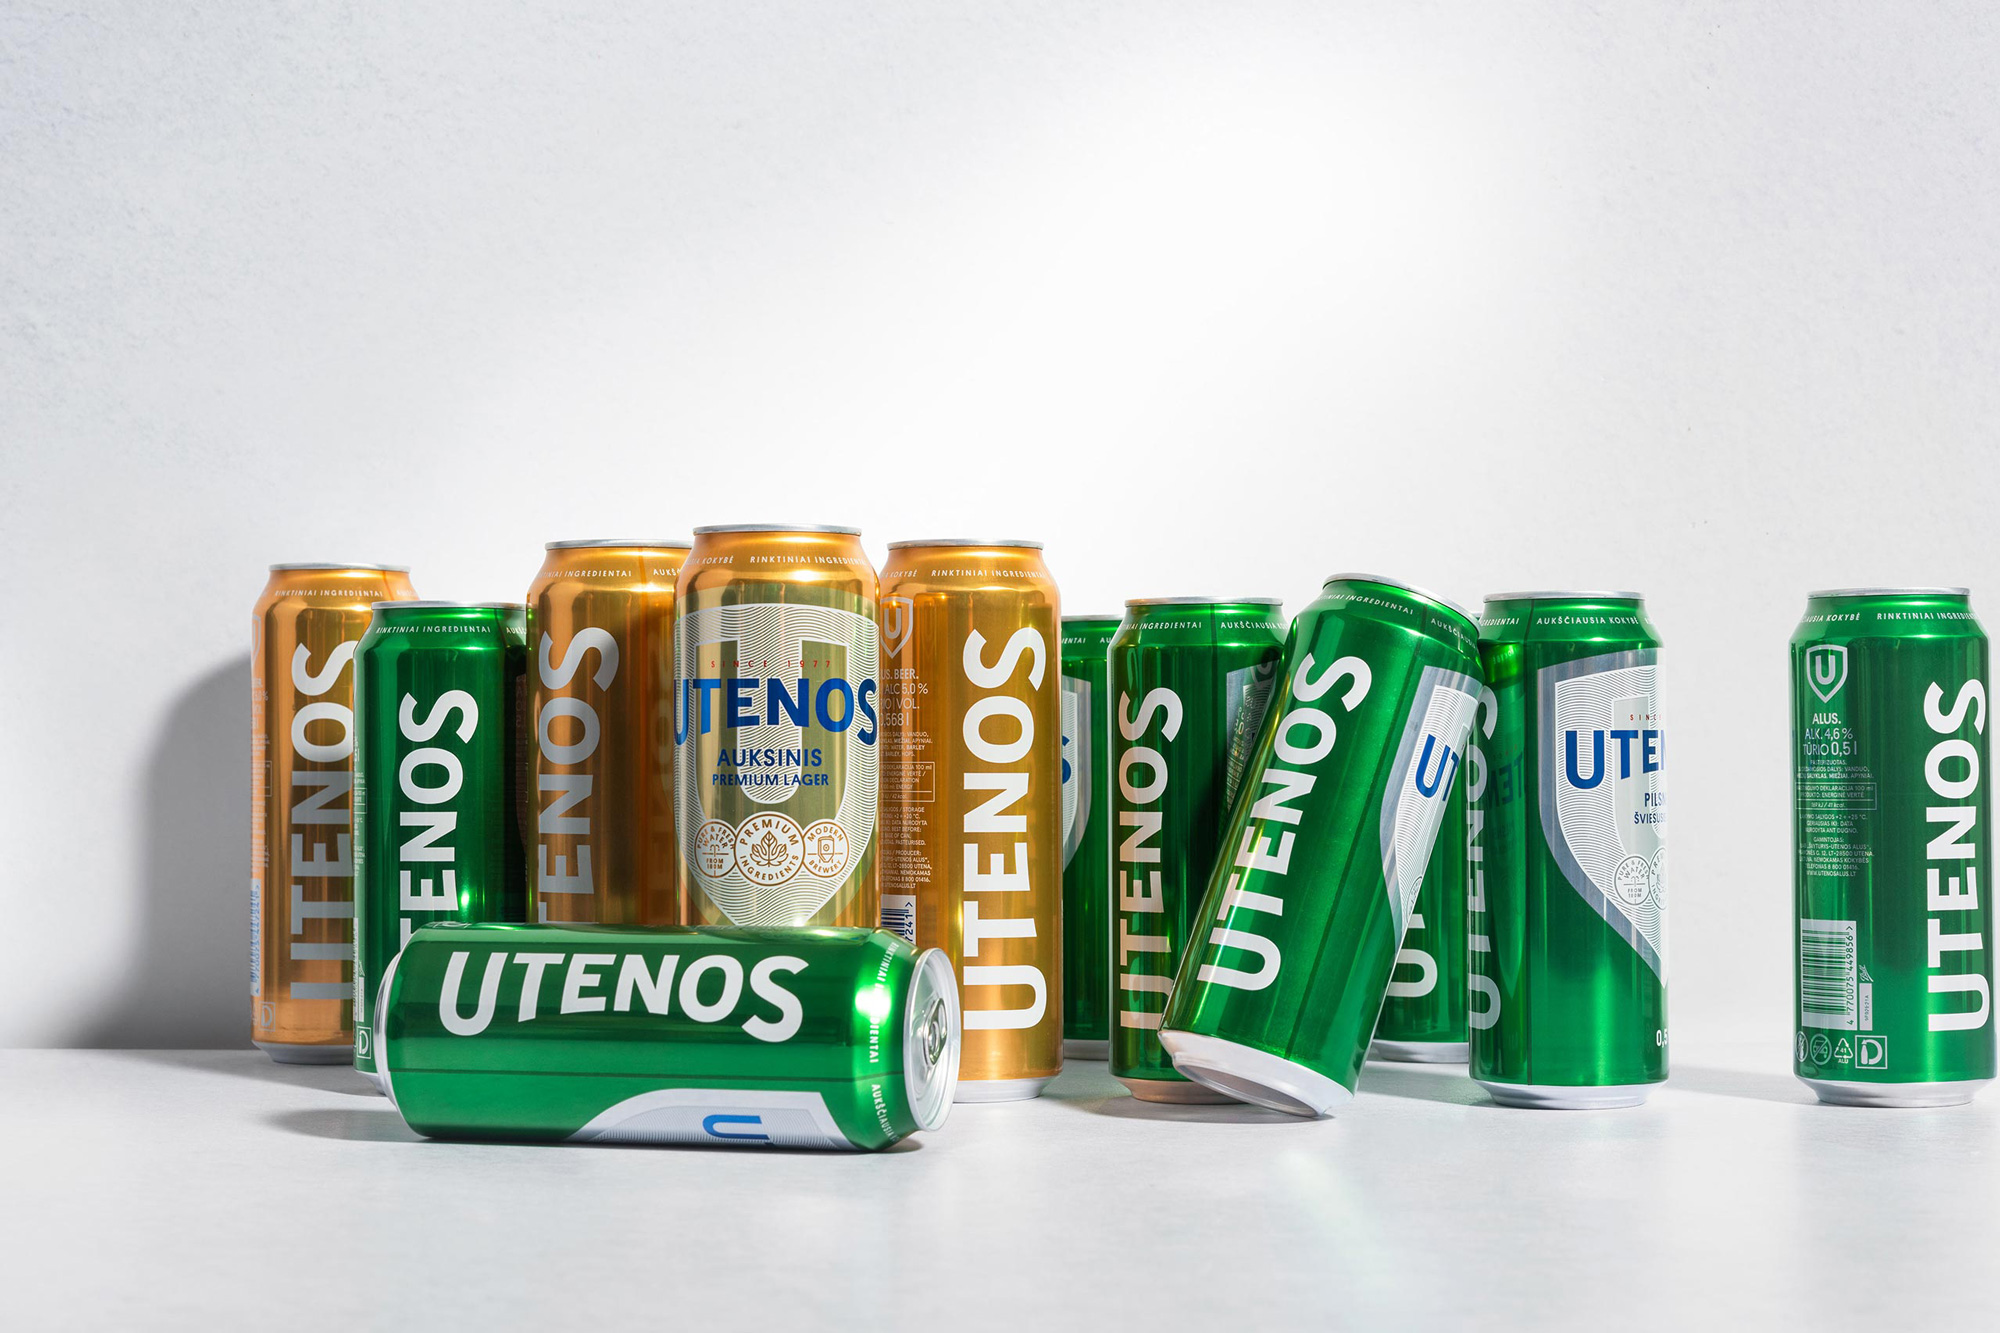 New Logo and Packaging for Utenos Alus by étiquette